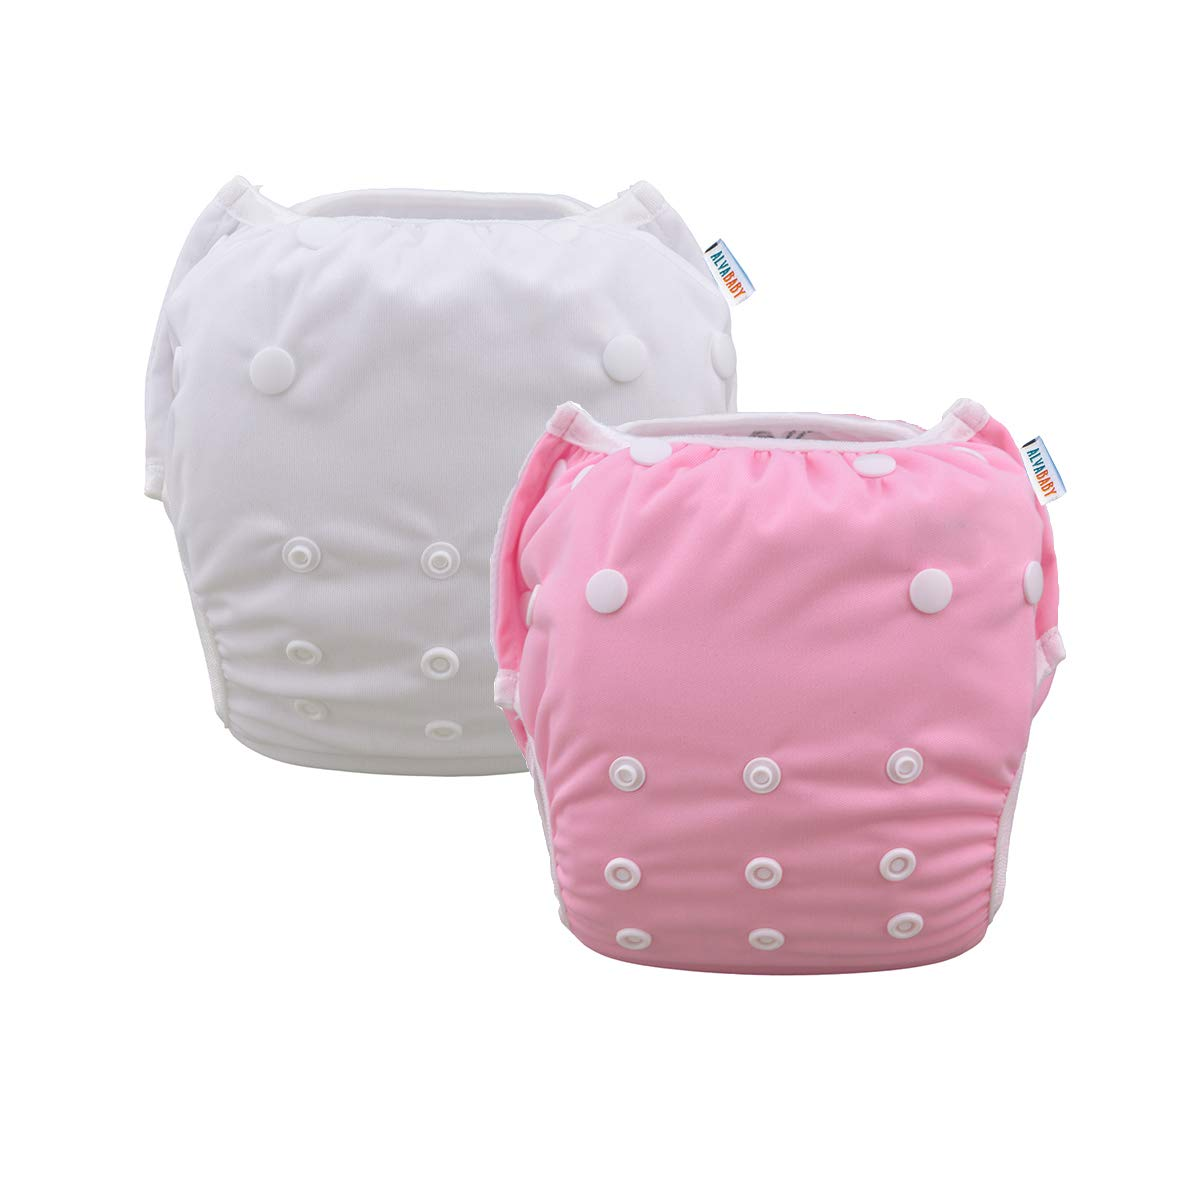 ALVABABY Swim Diapers 2pcs Reuseable /& Adjustable for Baby Swimming Lessons Flowers, one Size 0-2 Years Old